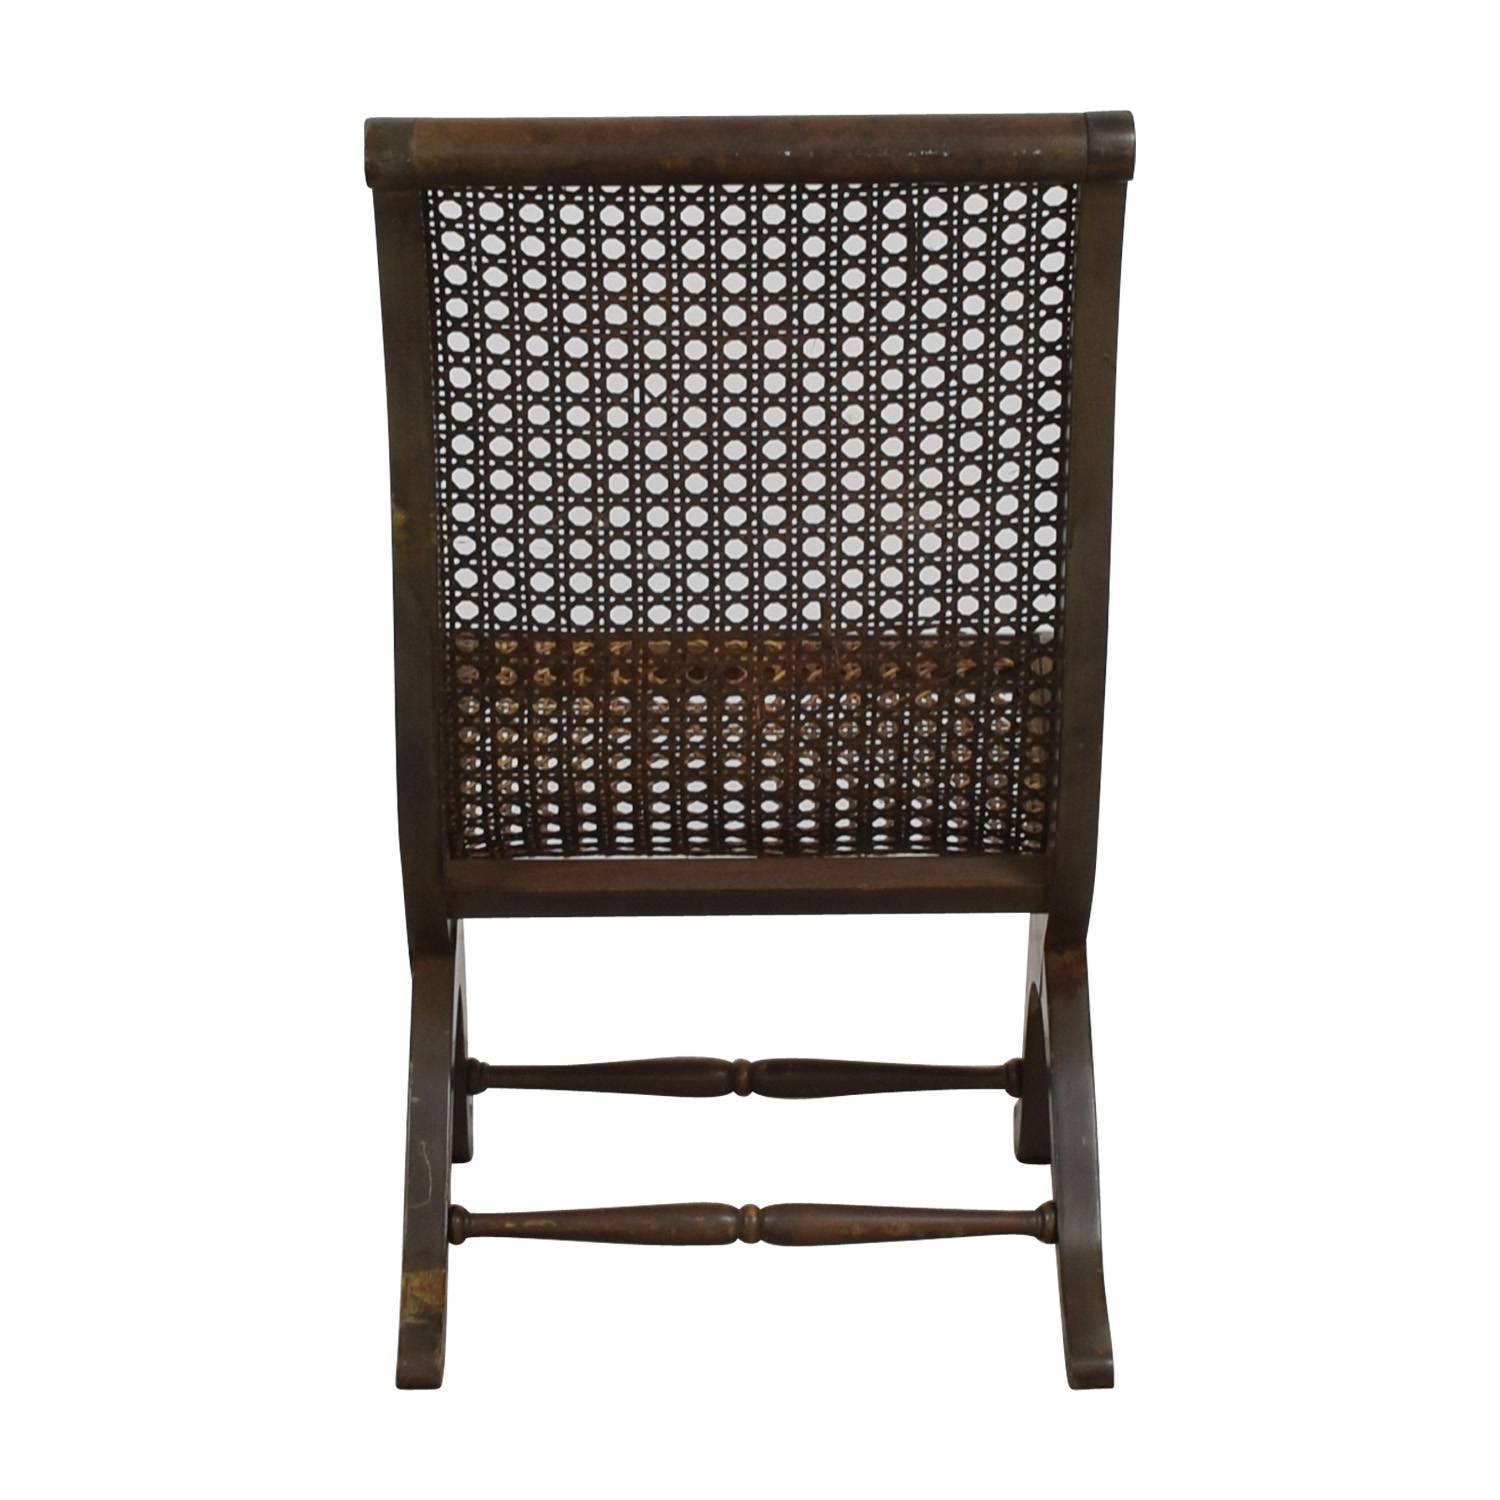 buy Antique Sloped-Back Cane Rattan Accent Chair  Chairs